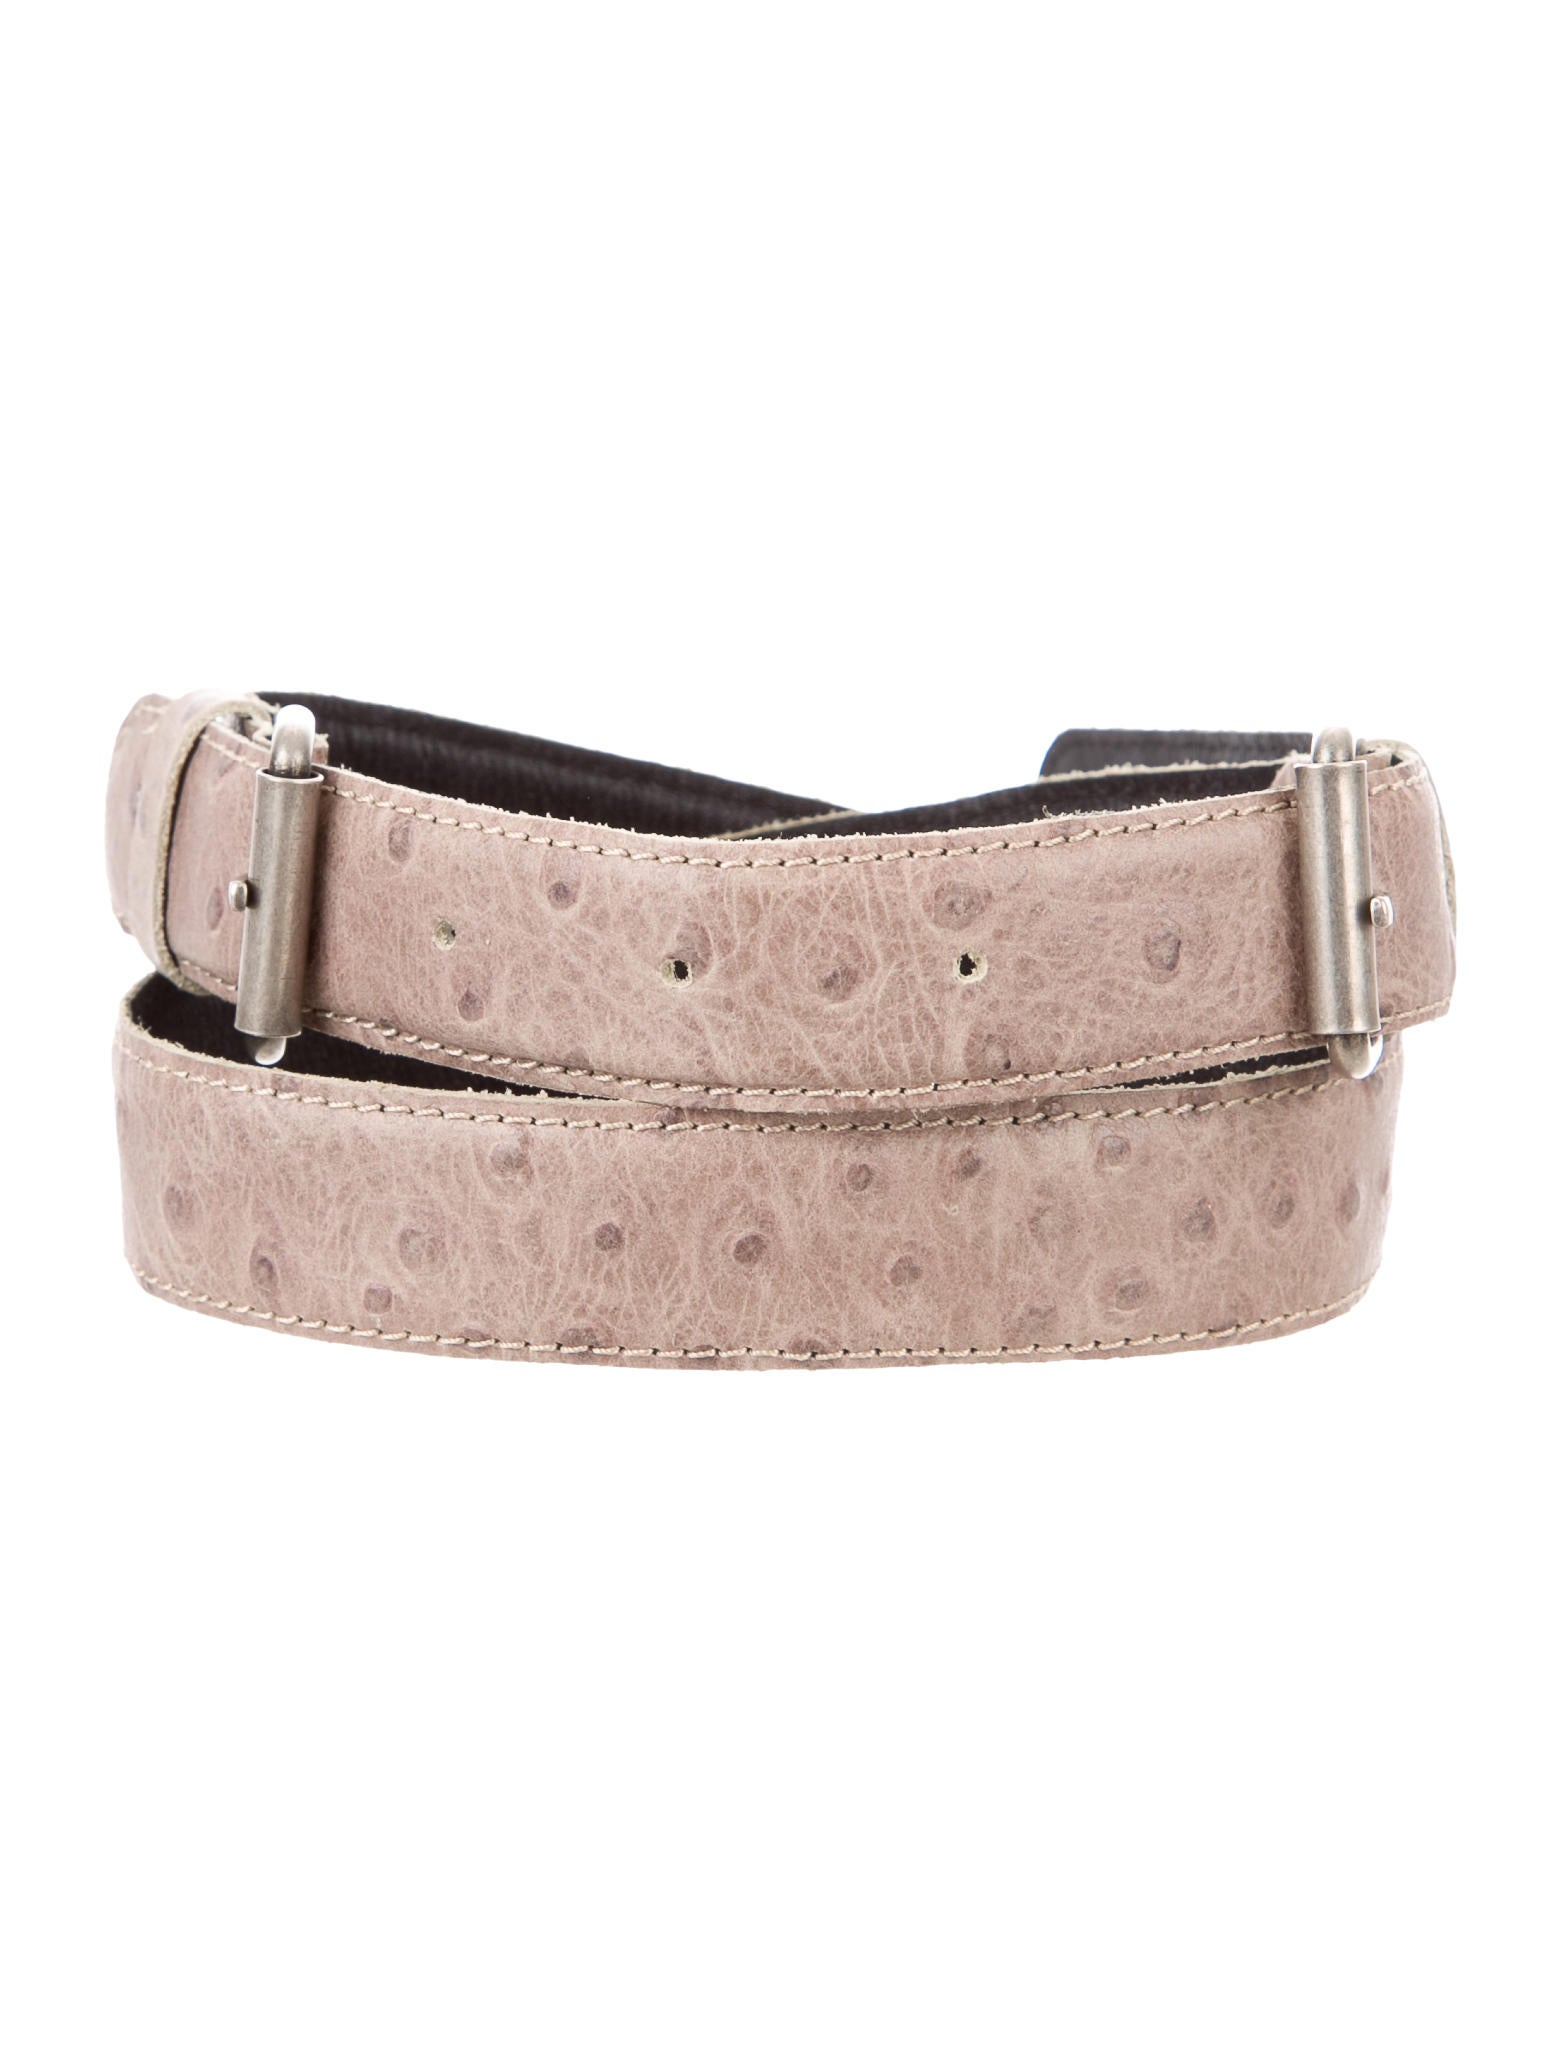 comey embossed leather belt accessories